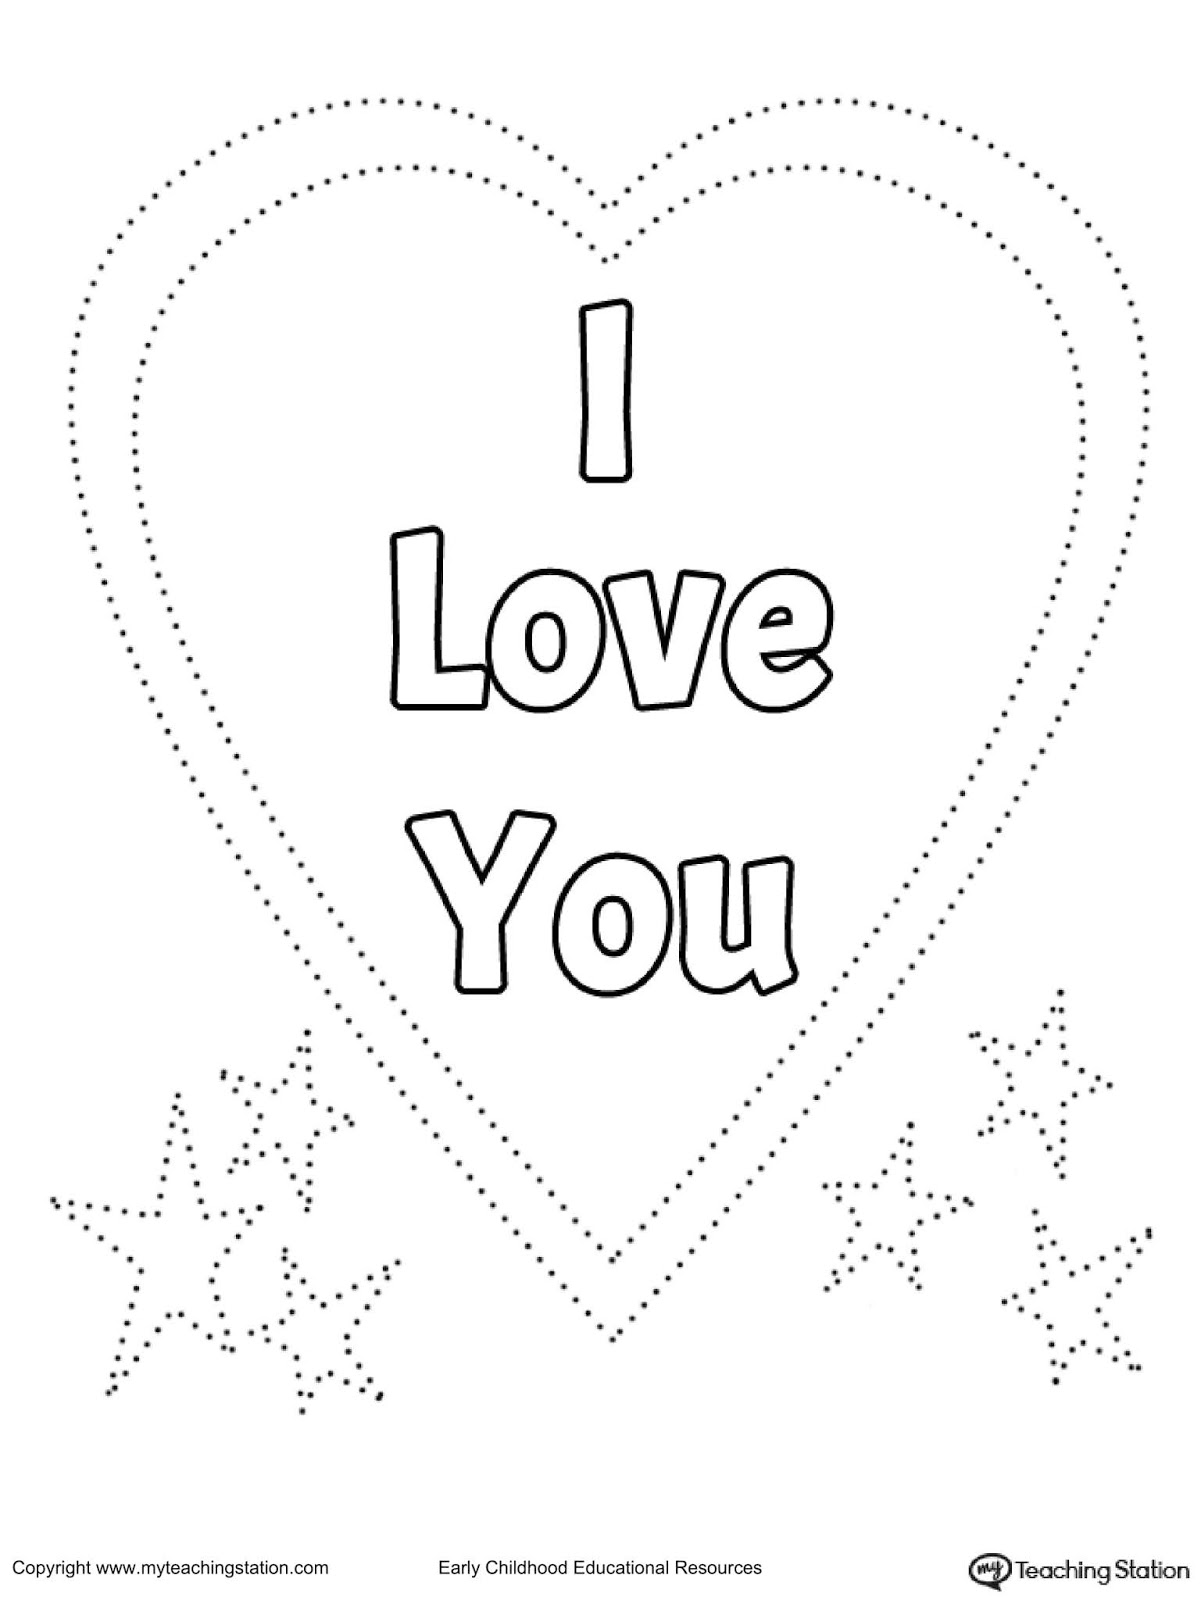 Coloring and Tracing I Love You Sign